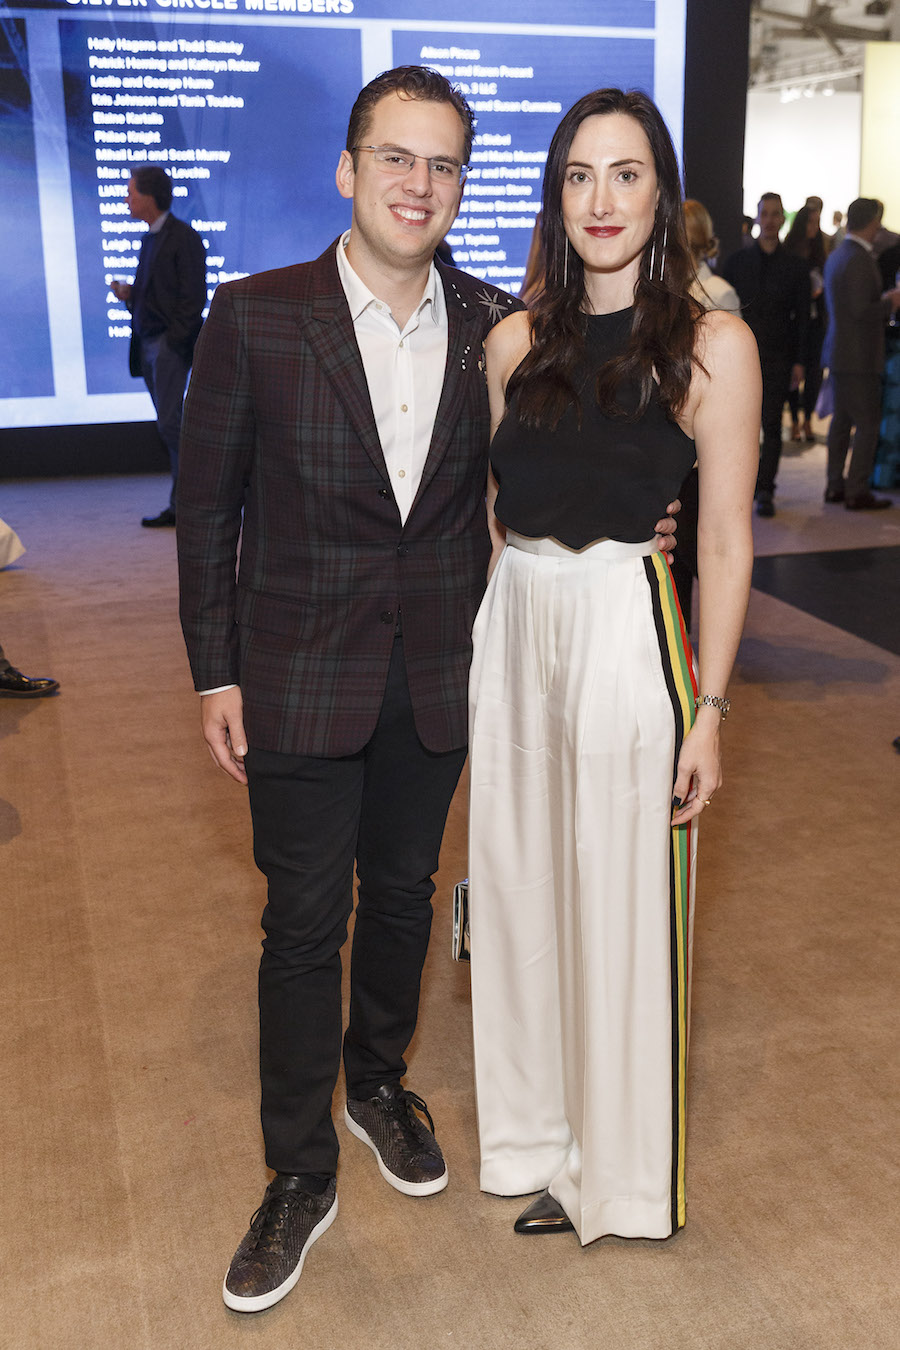 Mike Krieger and Kaitlyn Krieger